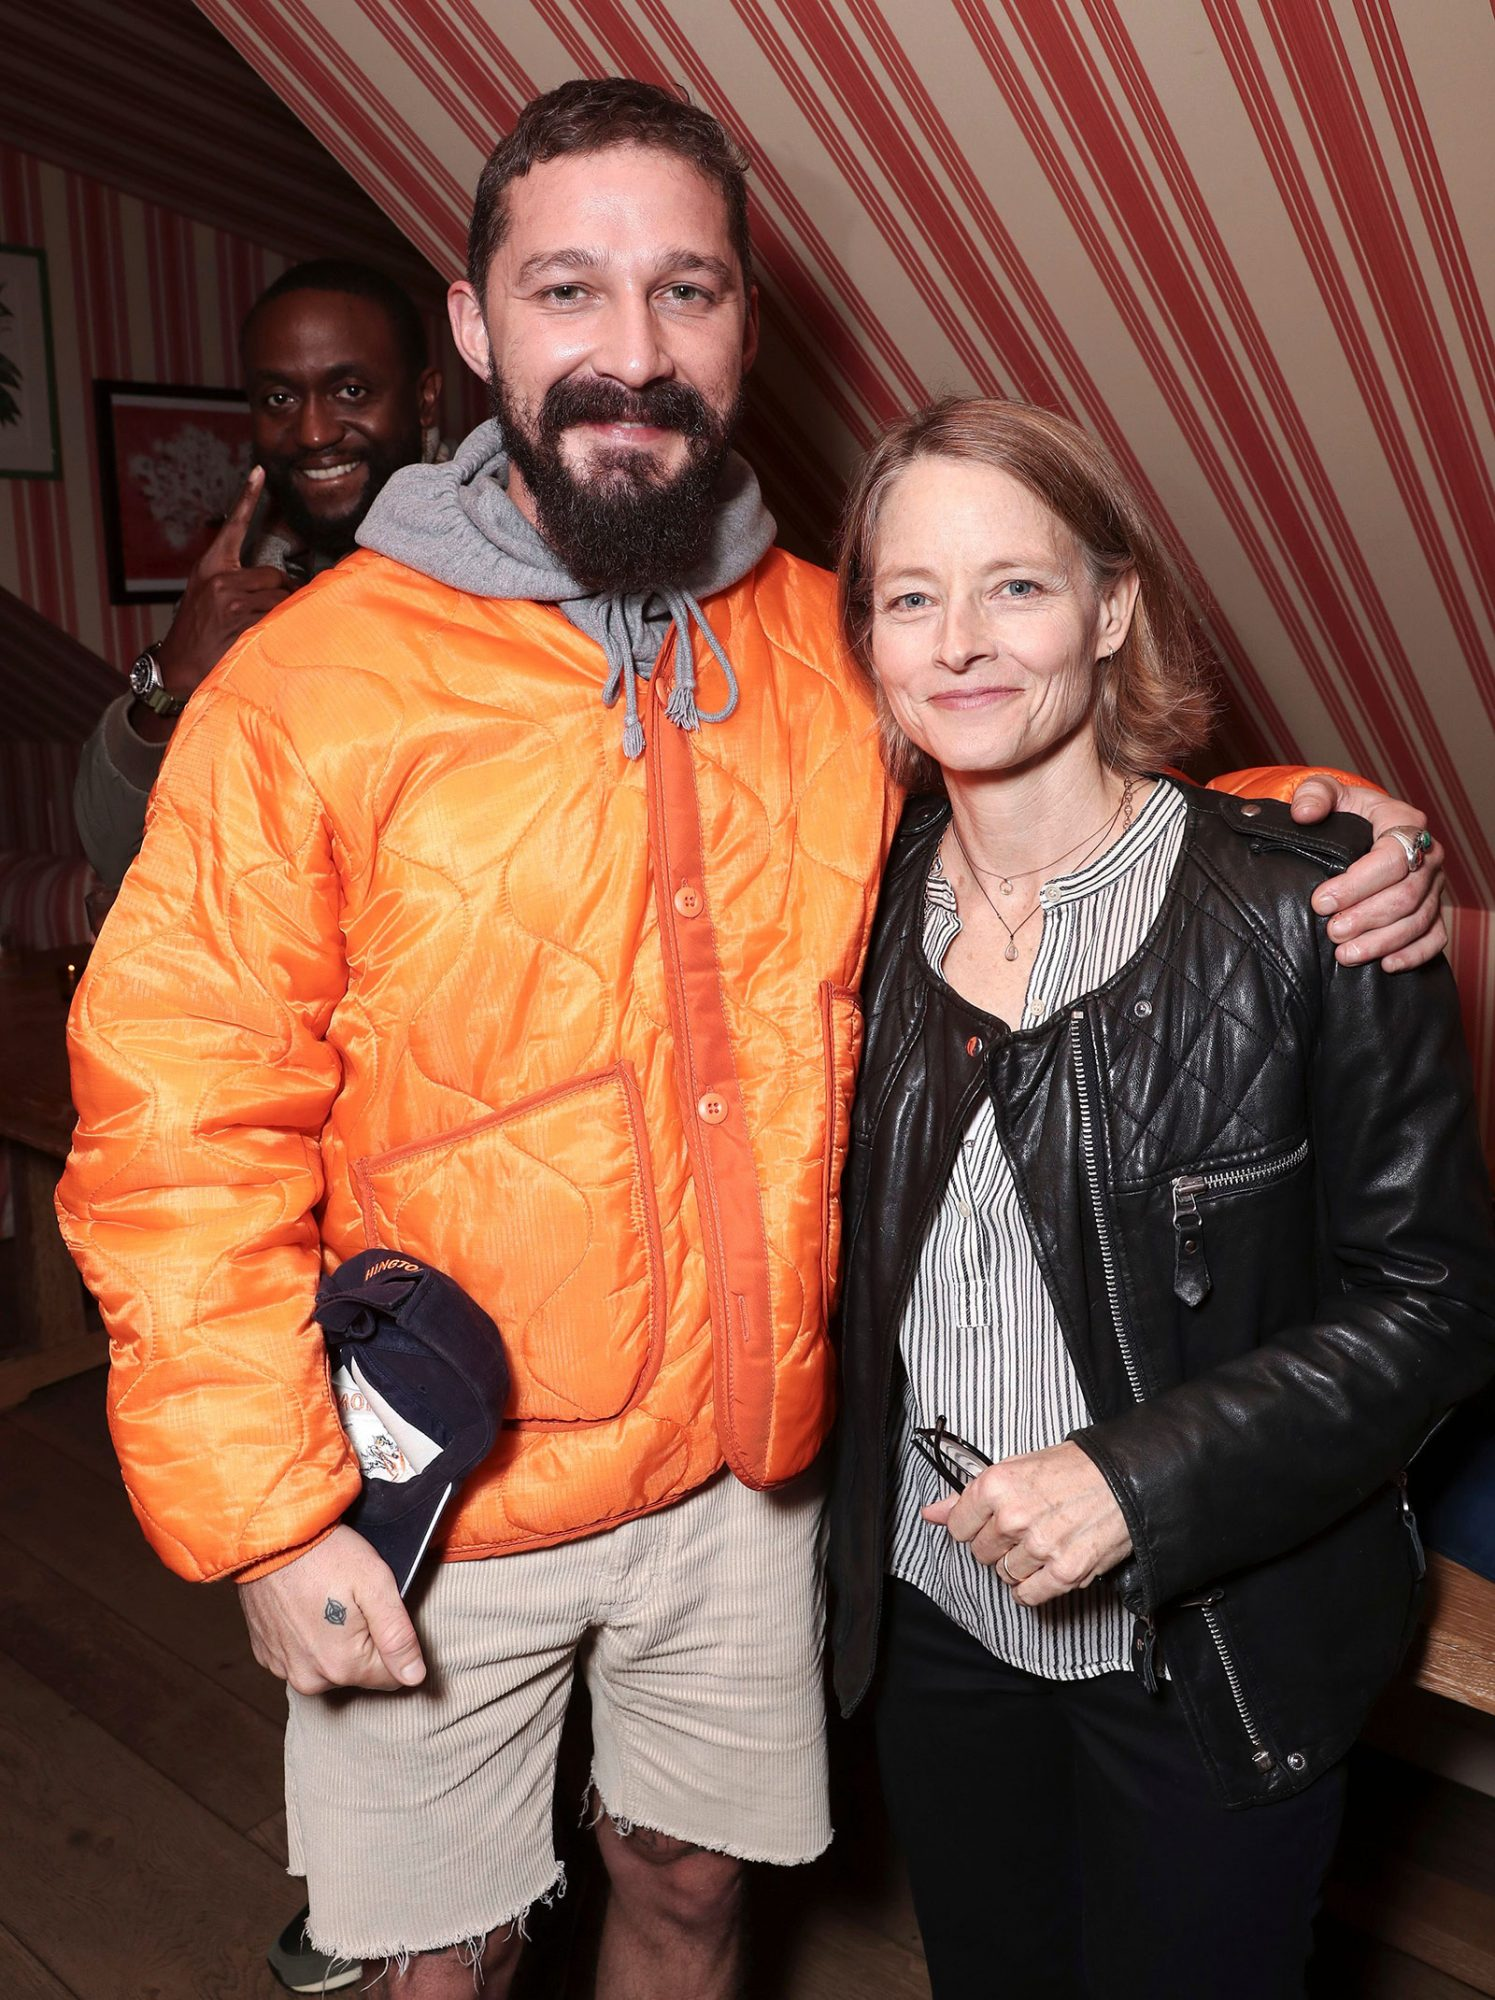 Shia LaBeouf and Jodie Foster